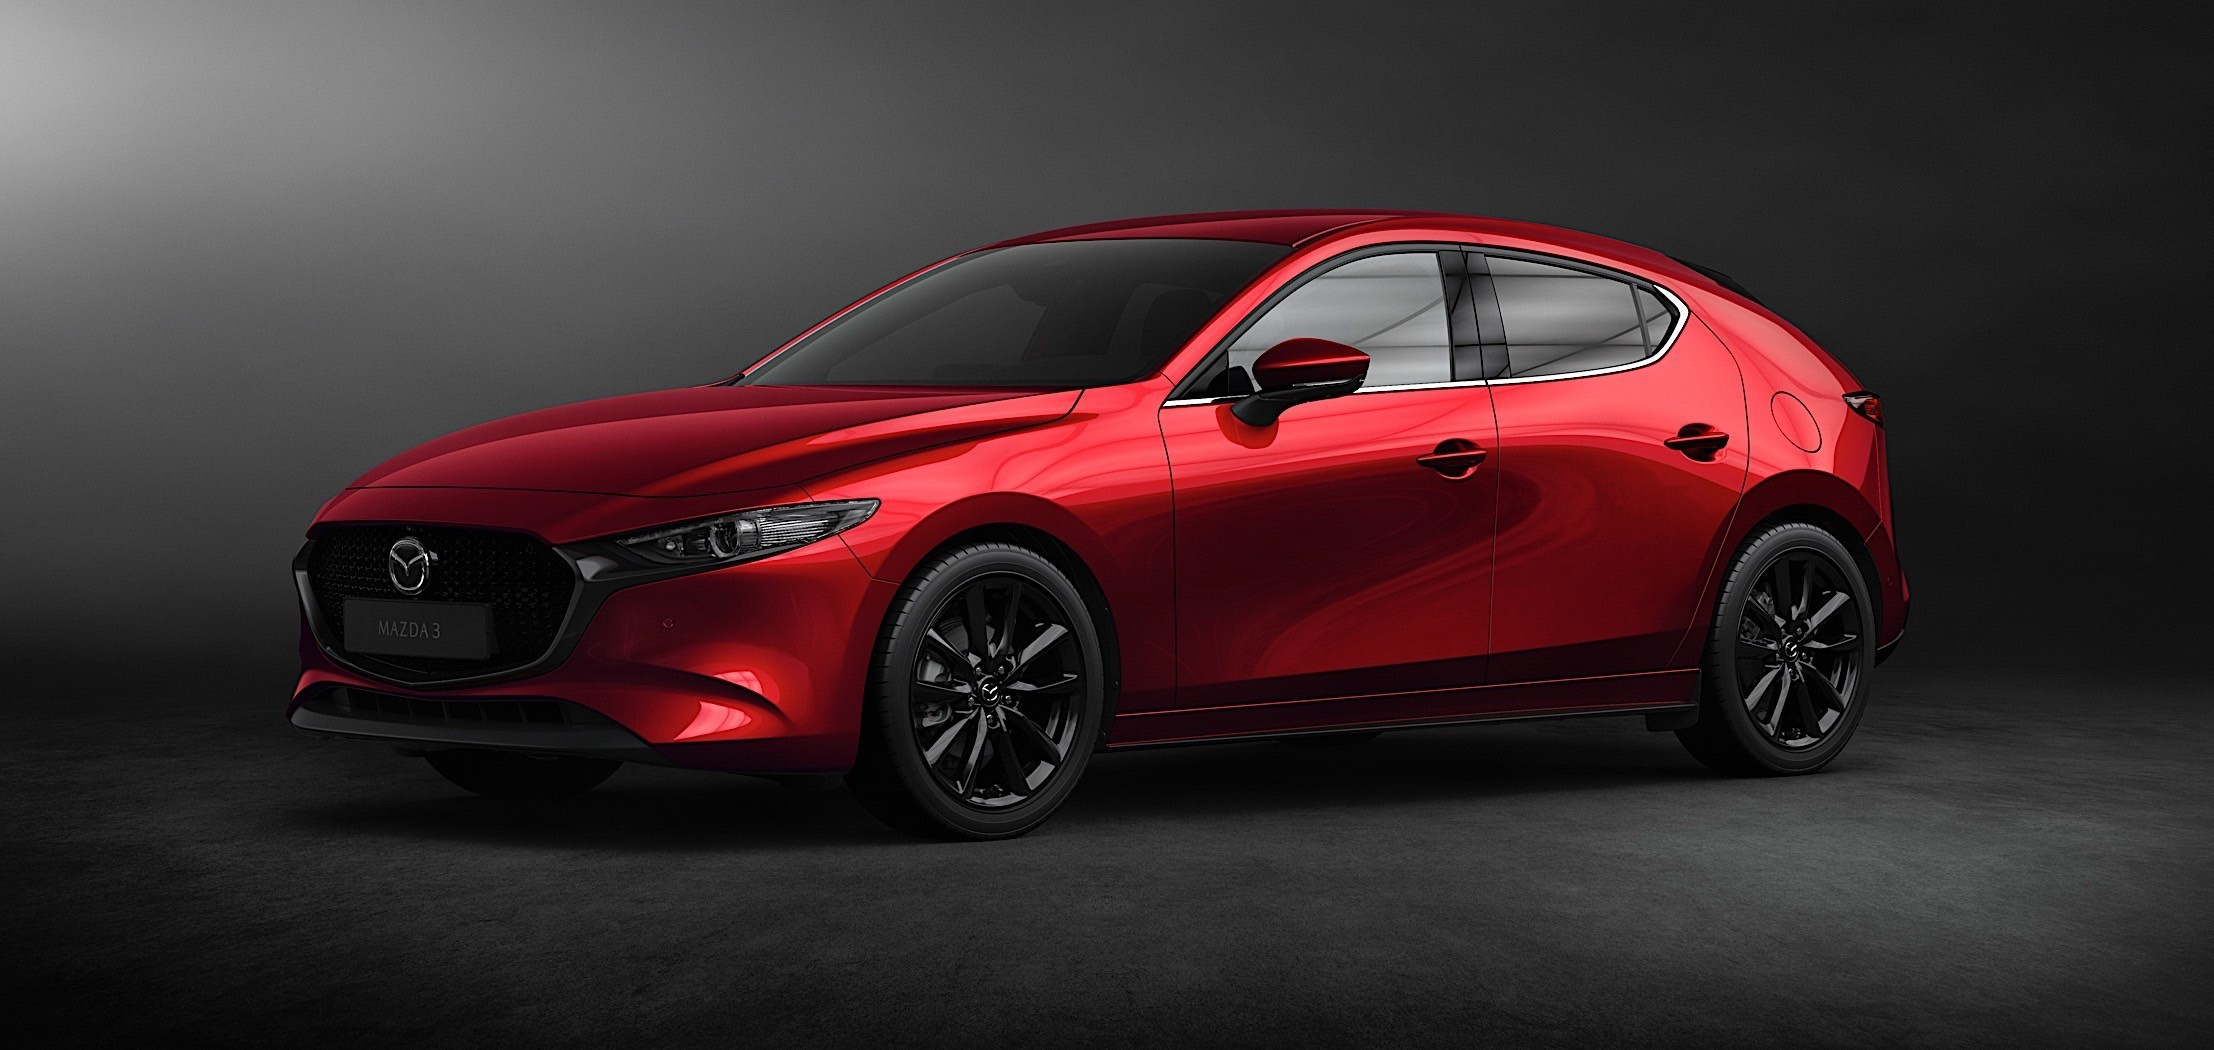 74 The Best Mazda 3 Gt 2020 Redesign And Concept